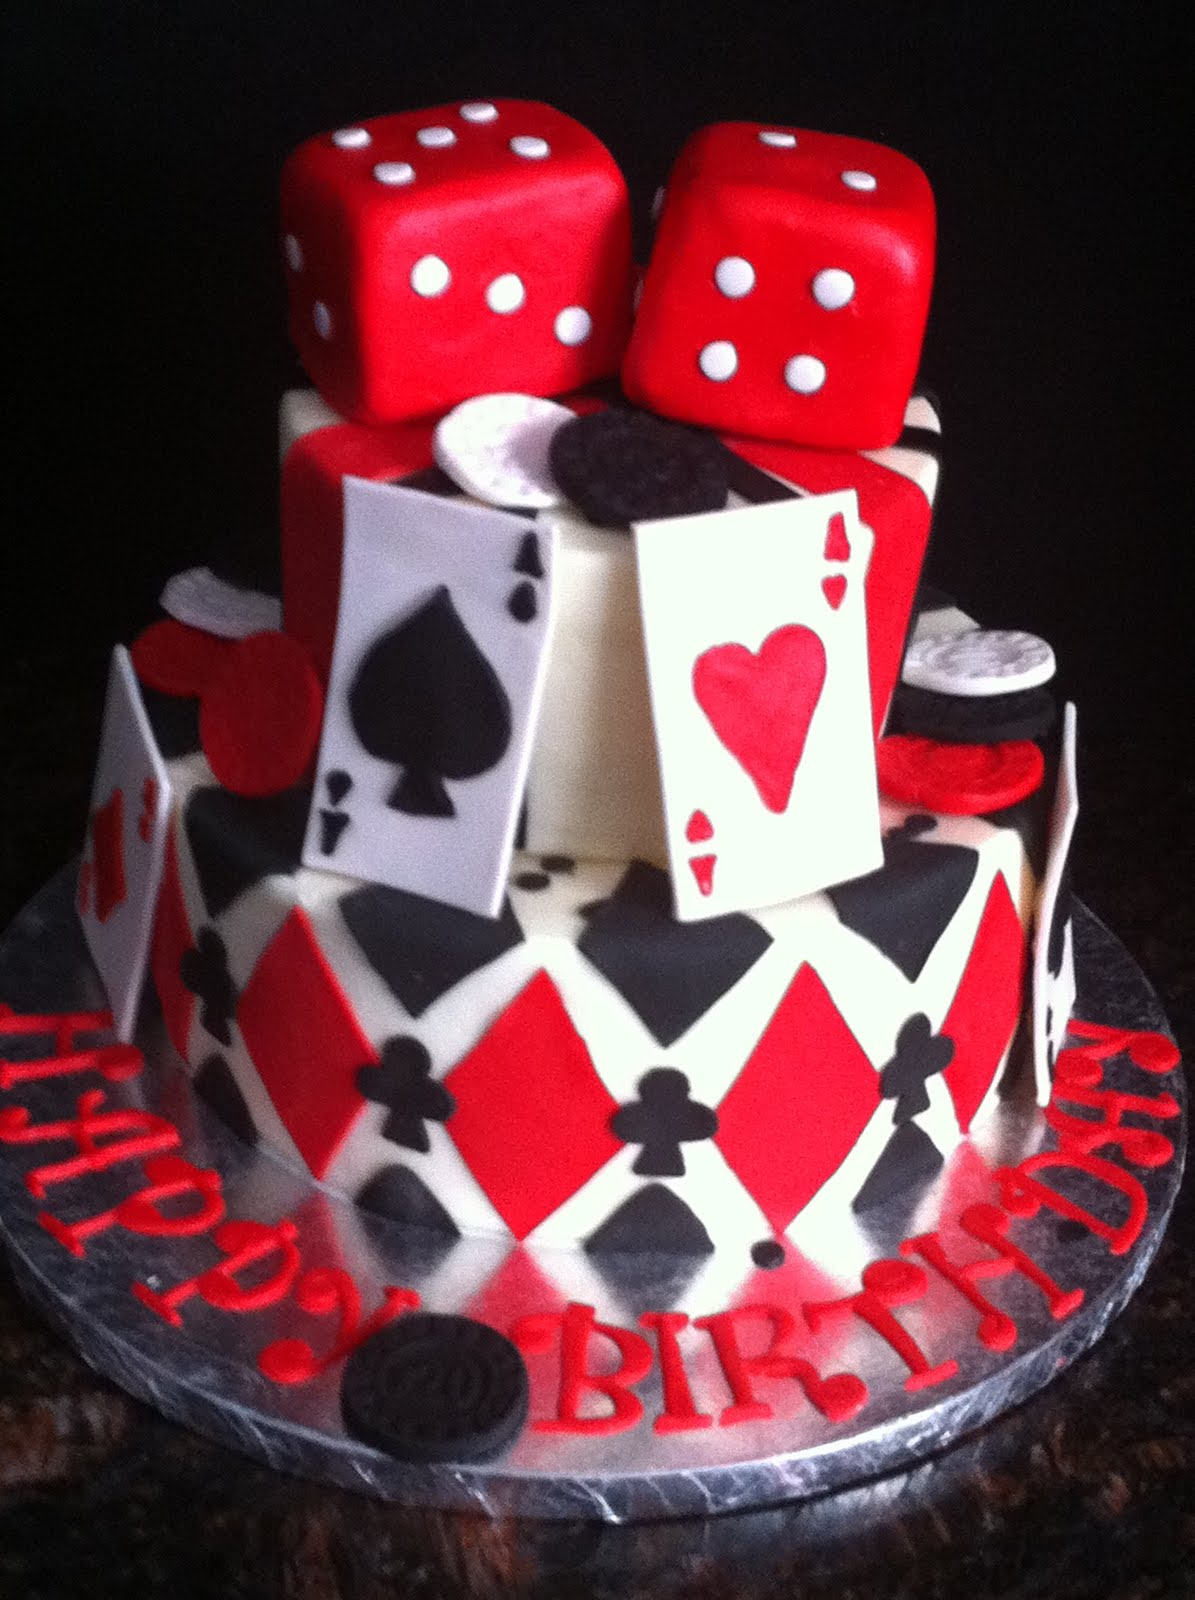 Casino birthday cake ideas what las vegas casinos have caribbean stud poker